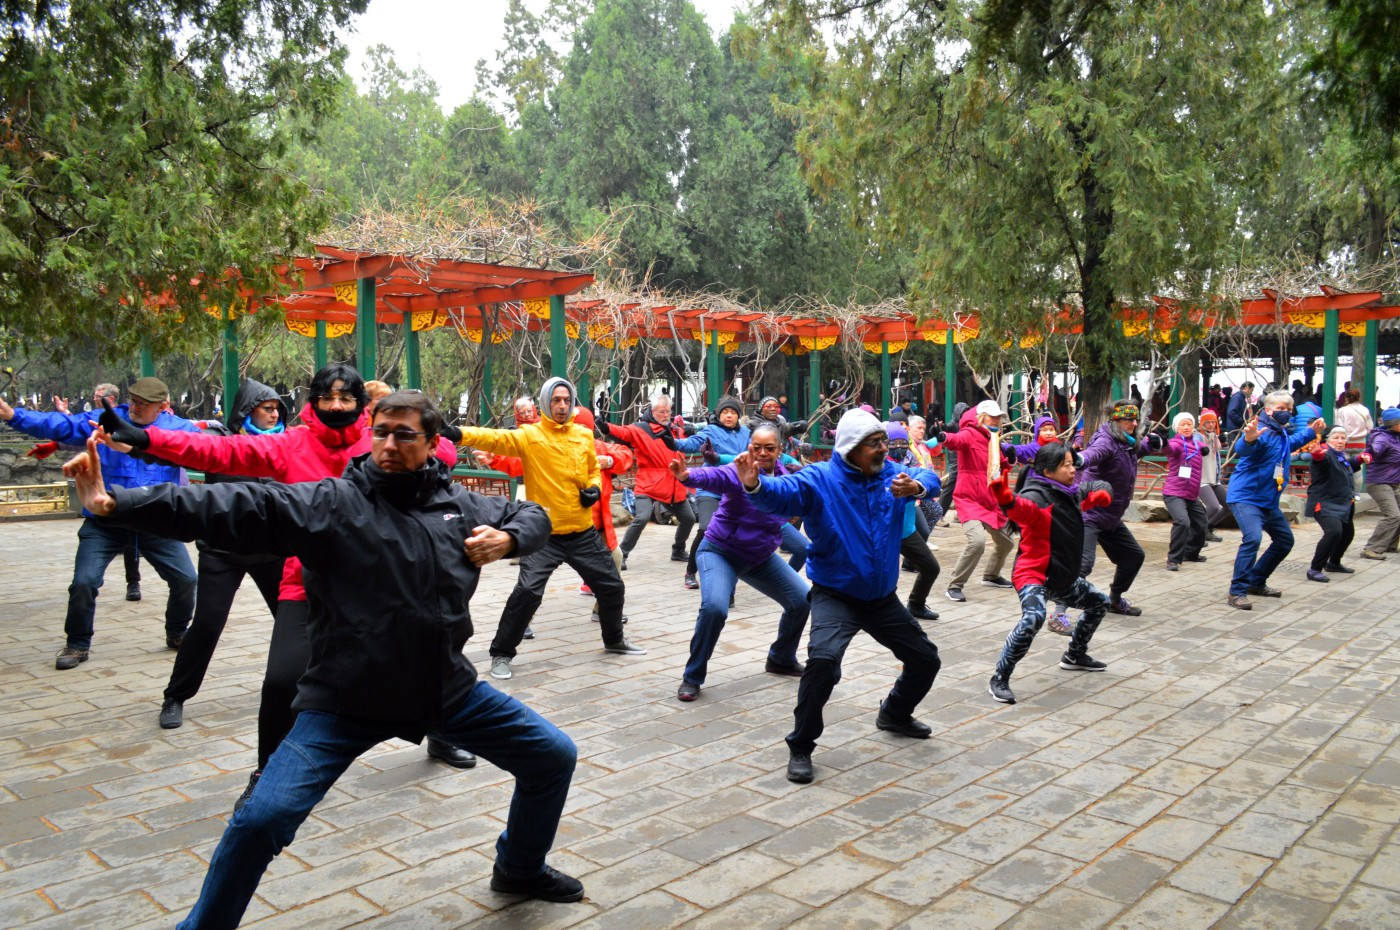 Practicing in the Temple of Heaven, Beijing